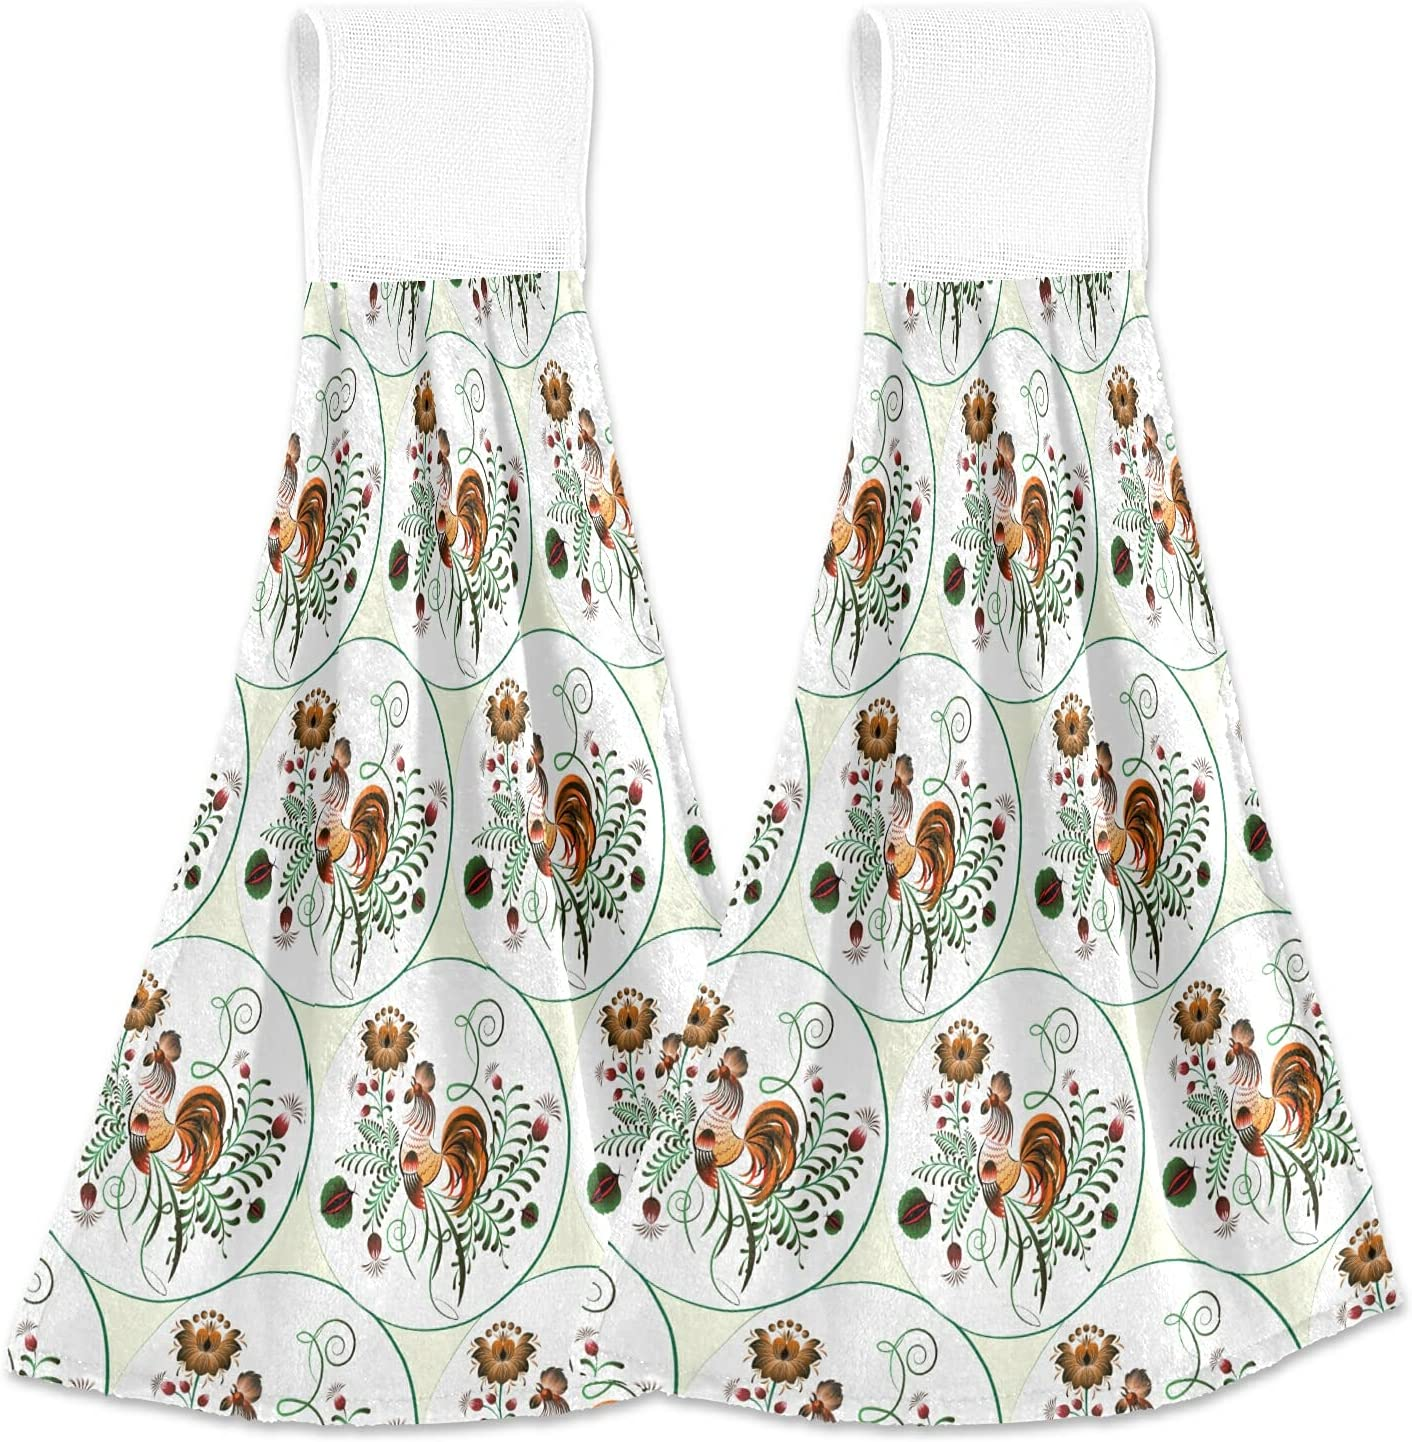 KLL Colorful Rooster with Floral Hanging Absorbent Ki 67% OFF of fixed price Towel Max 44% OFF 2PCS